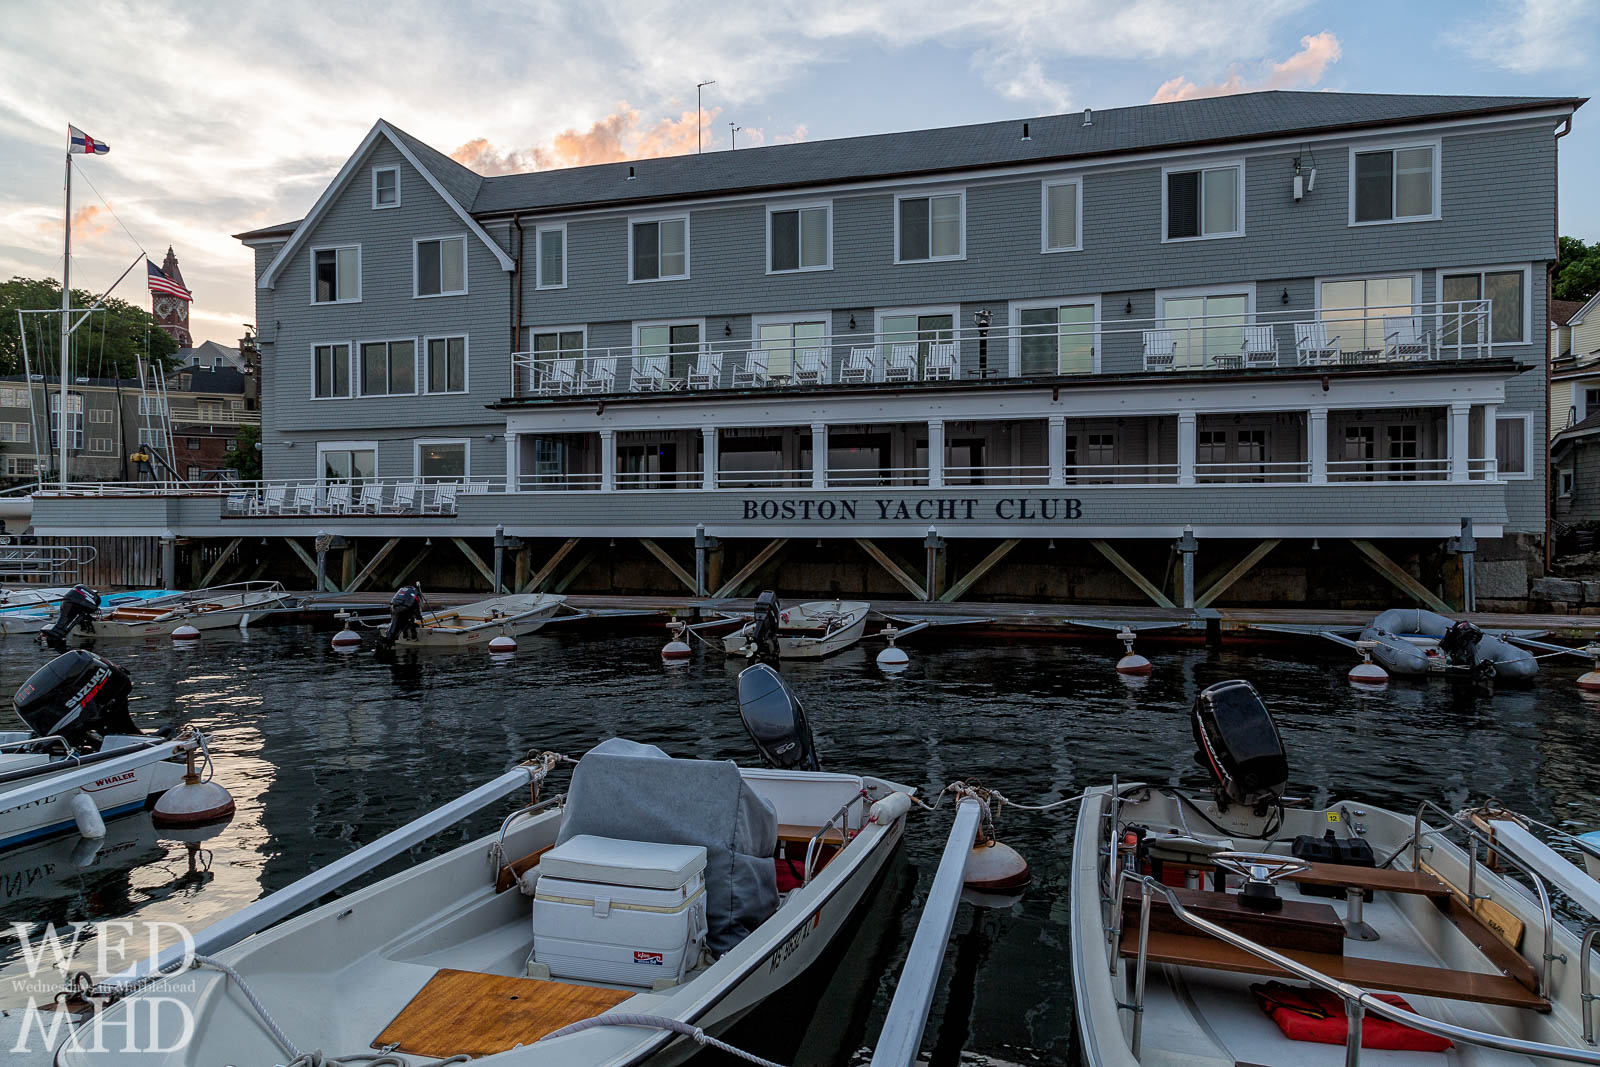 A glimpse of Abbot Hall at sunset behind the full facade of the Boston Yacht Club captured at the end of a Summer day